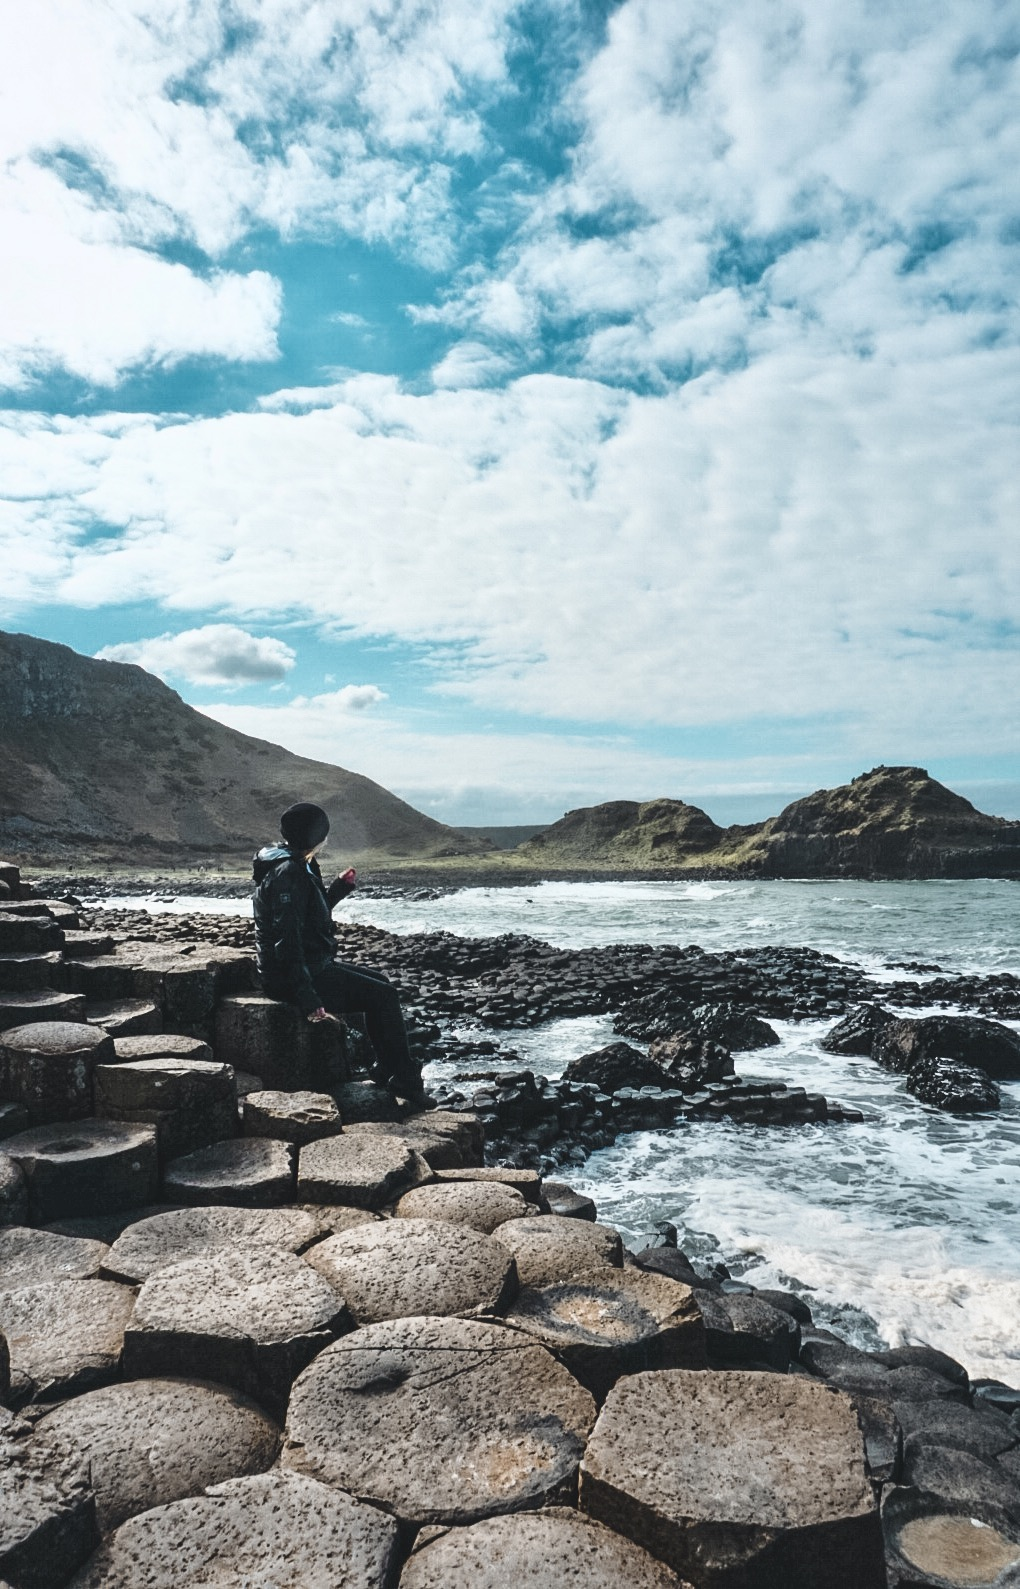 Sitting on the hexagonal rocks at Giant's Causeway in Northern Ireland